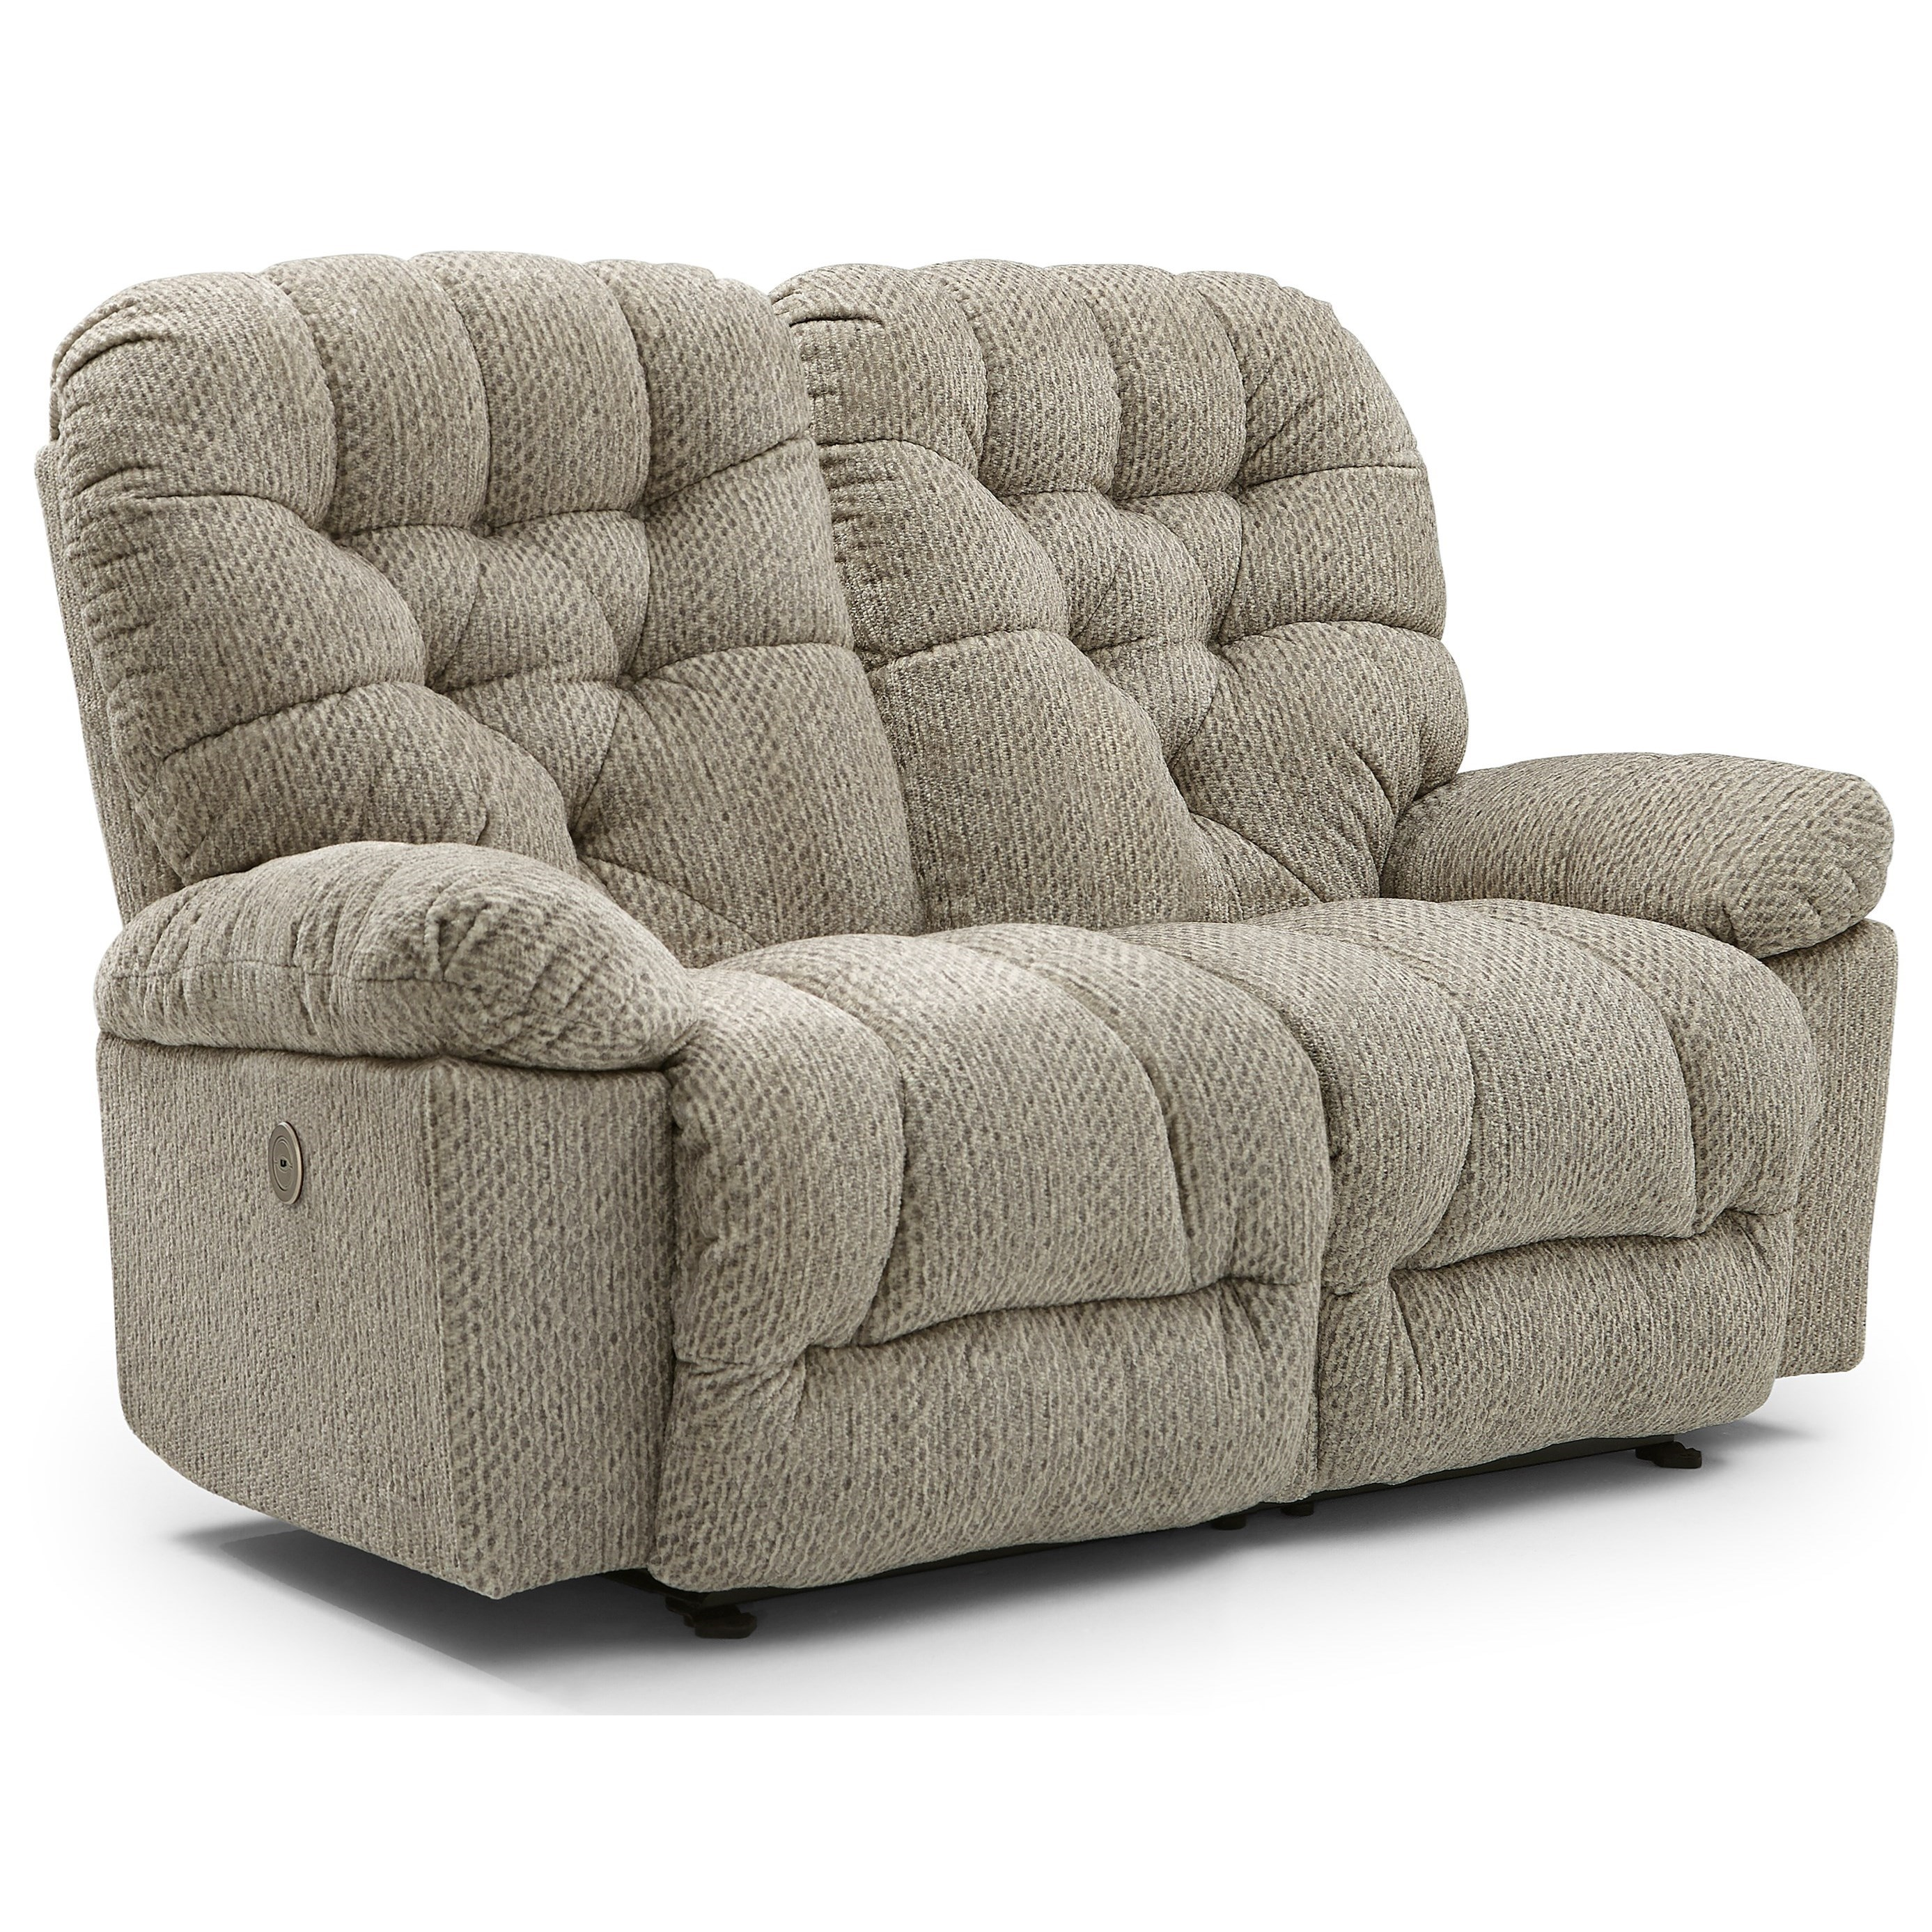 Bolt Space Saving Loveseat by Best Home Furnishings at Baer's Furniture